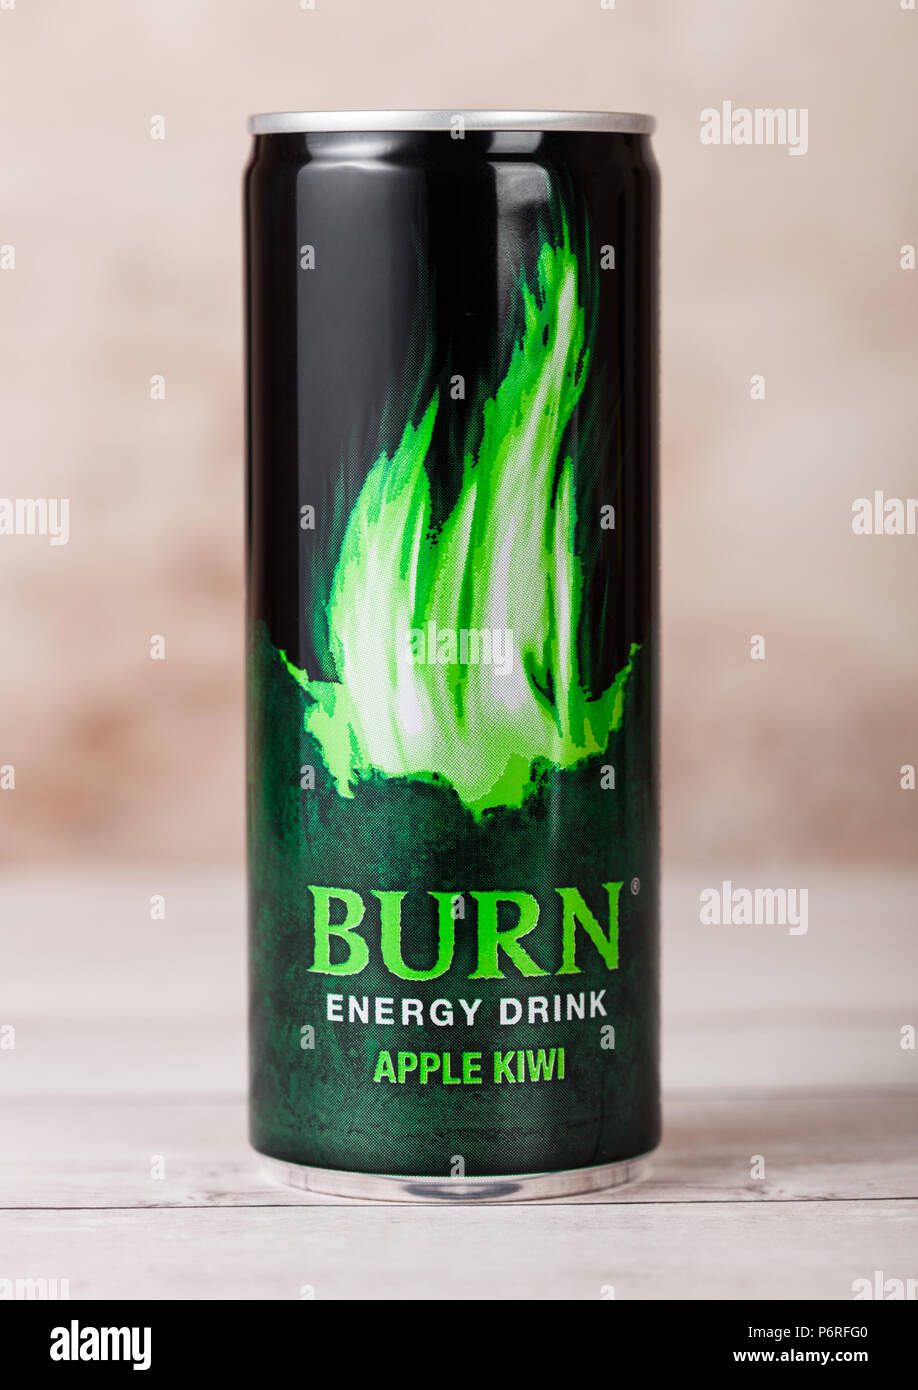 LONDON, UK - JUNE 30, 2018: Can of Burn Energy Drink Original on wooden background. Burn energy is made for keeping eyes open and mind sharp. - Stock Image